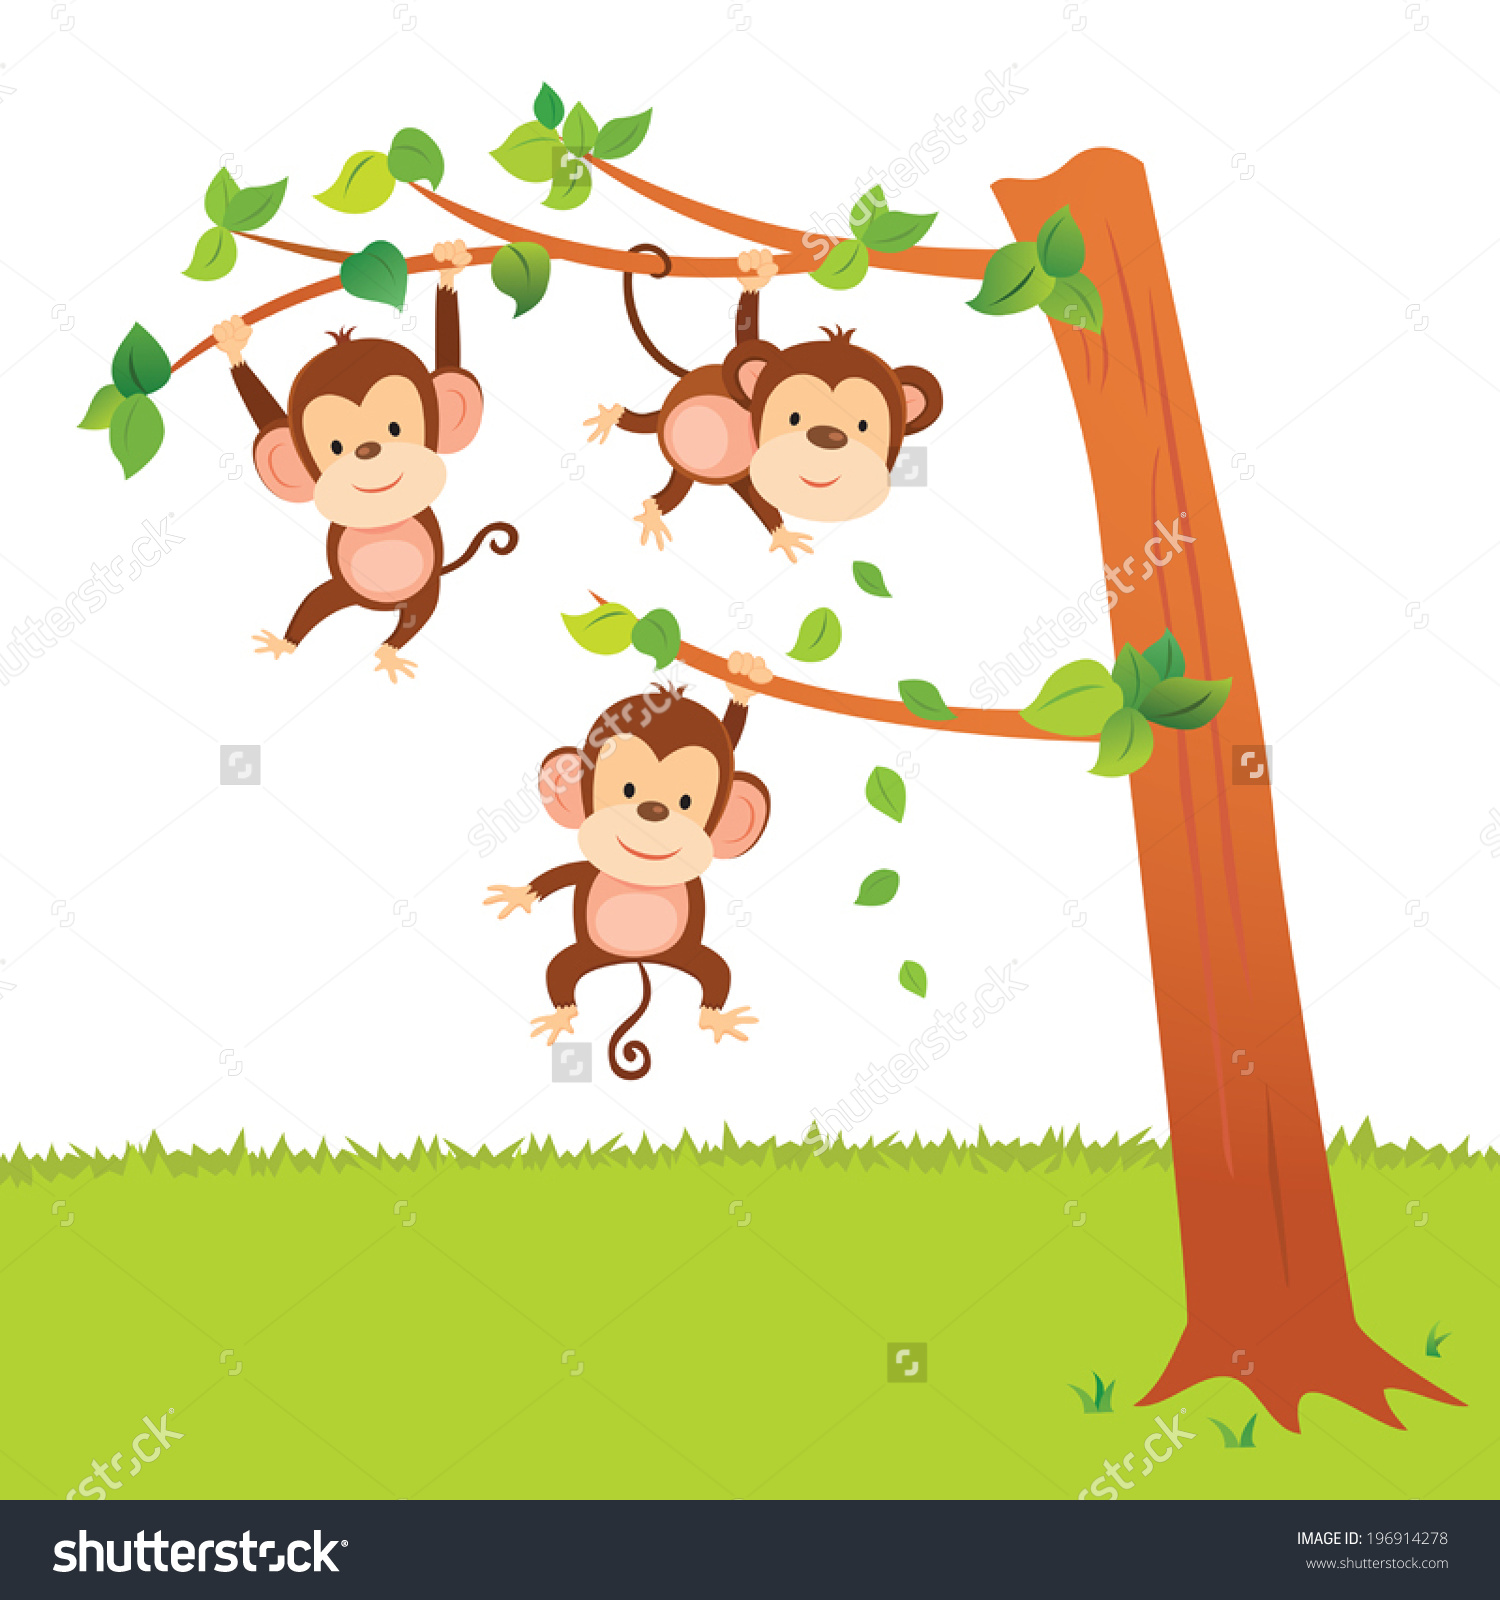 clipart monkey swinging in a tree clipground